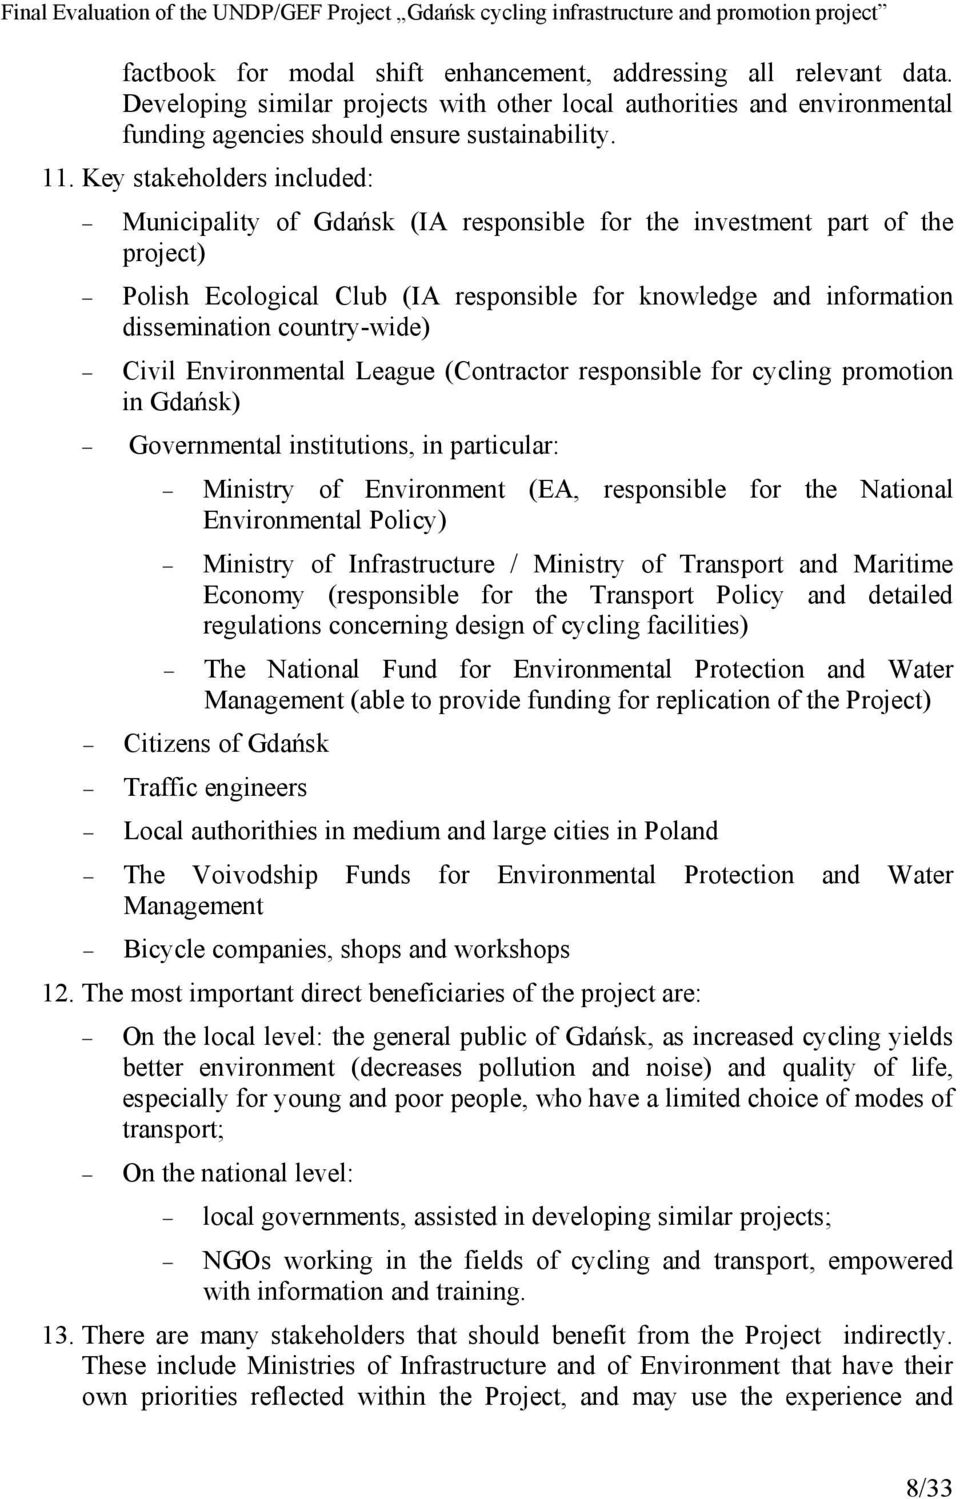 country-wide) Civil Environmental League (Contractor responsible for cycling promotion in Gdańsk) Governmental institutions, in particular: Ministry of Environment (EA, responsible for the National